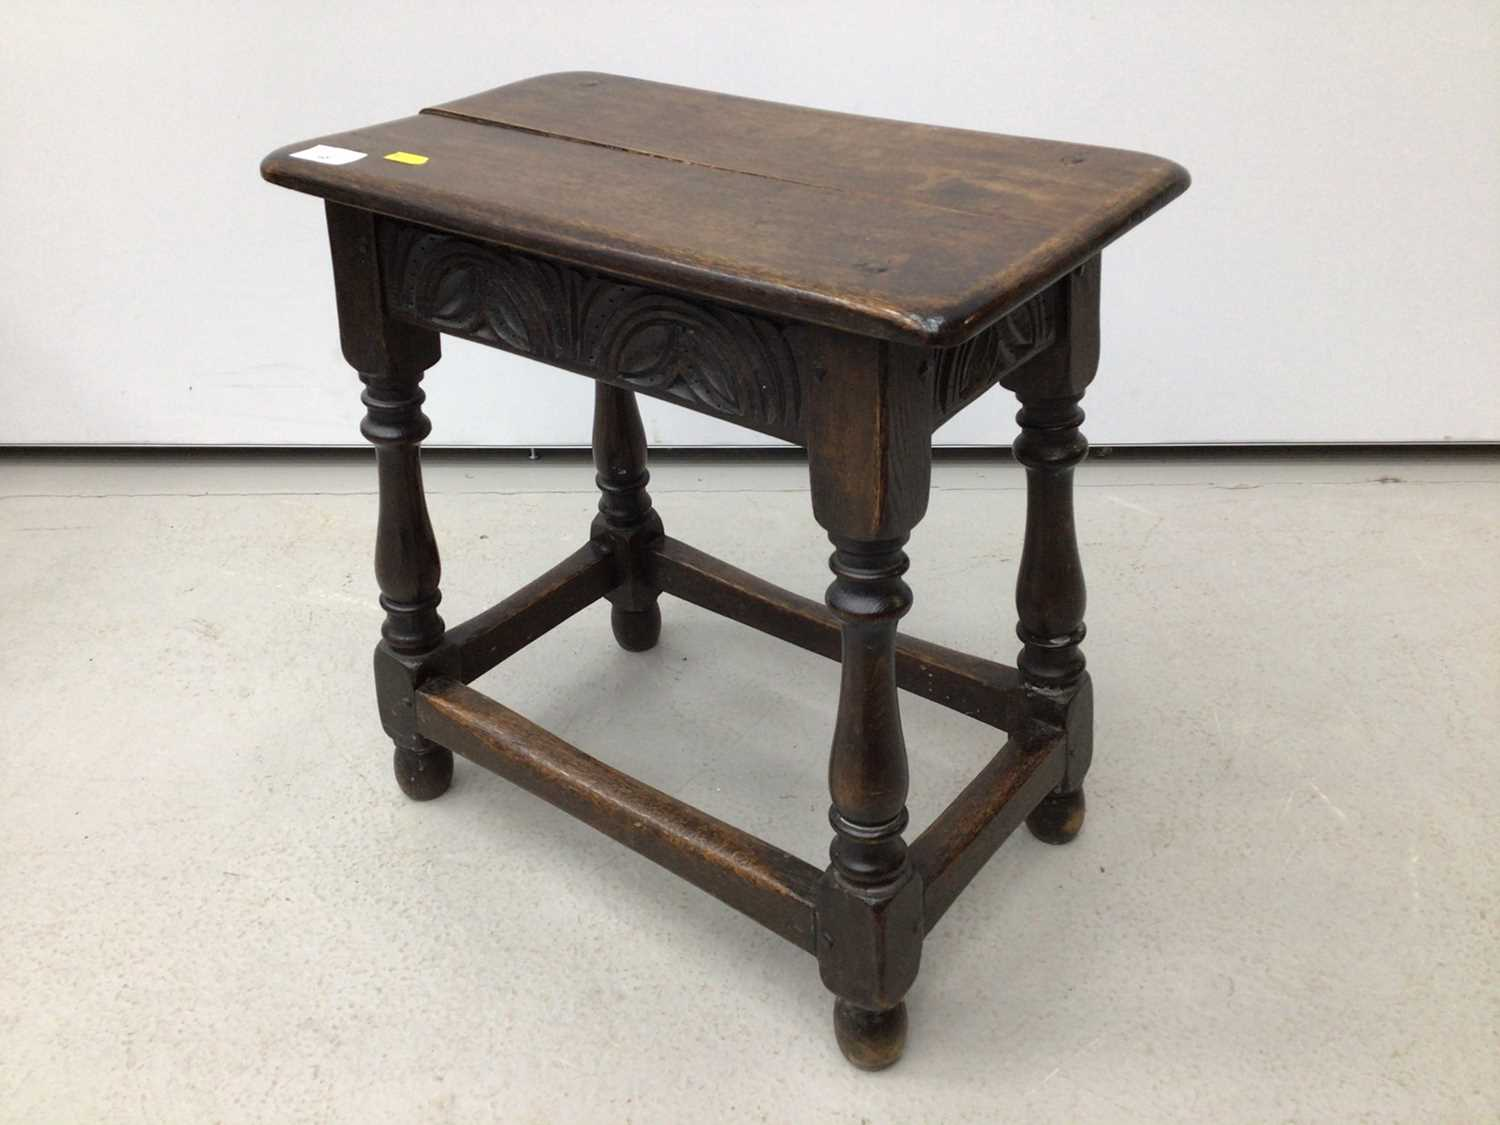 Carved oak joint stool on turned and block legs joined by stretchers, 44cm wide x 25cm deep x 45.5cm - Image 2 of 4